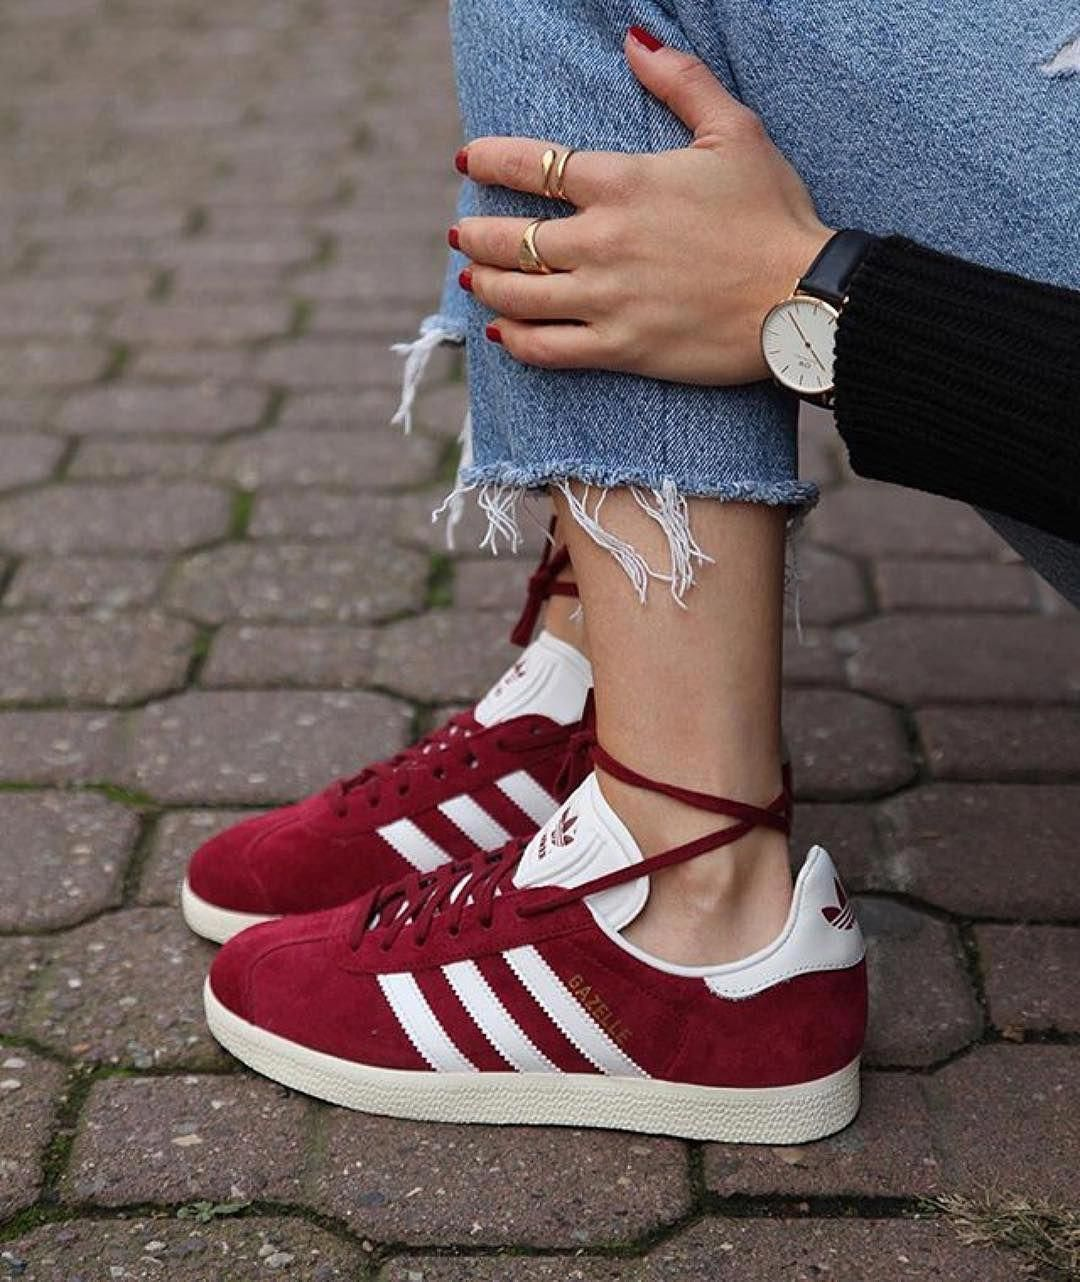 Adidas Womens Women's Shoes Outlet USA Have Lot Of Styles